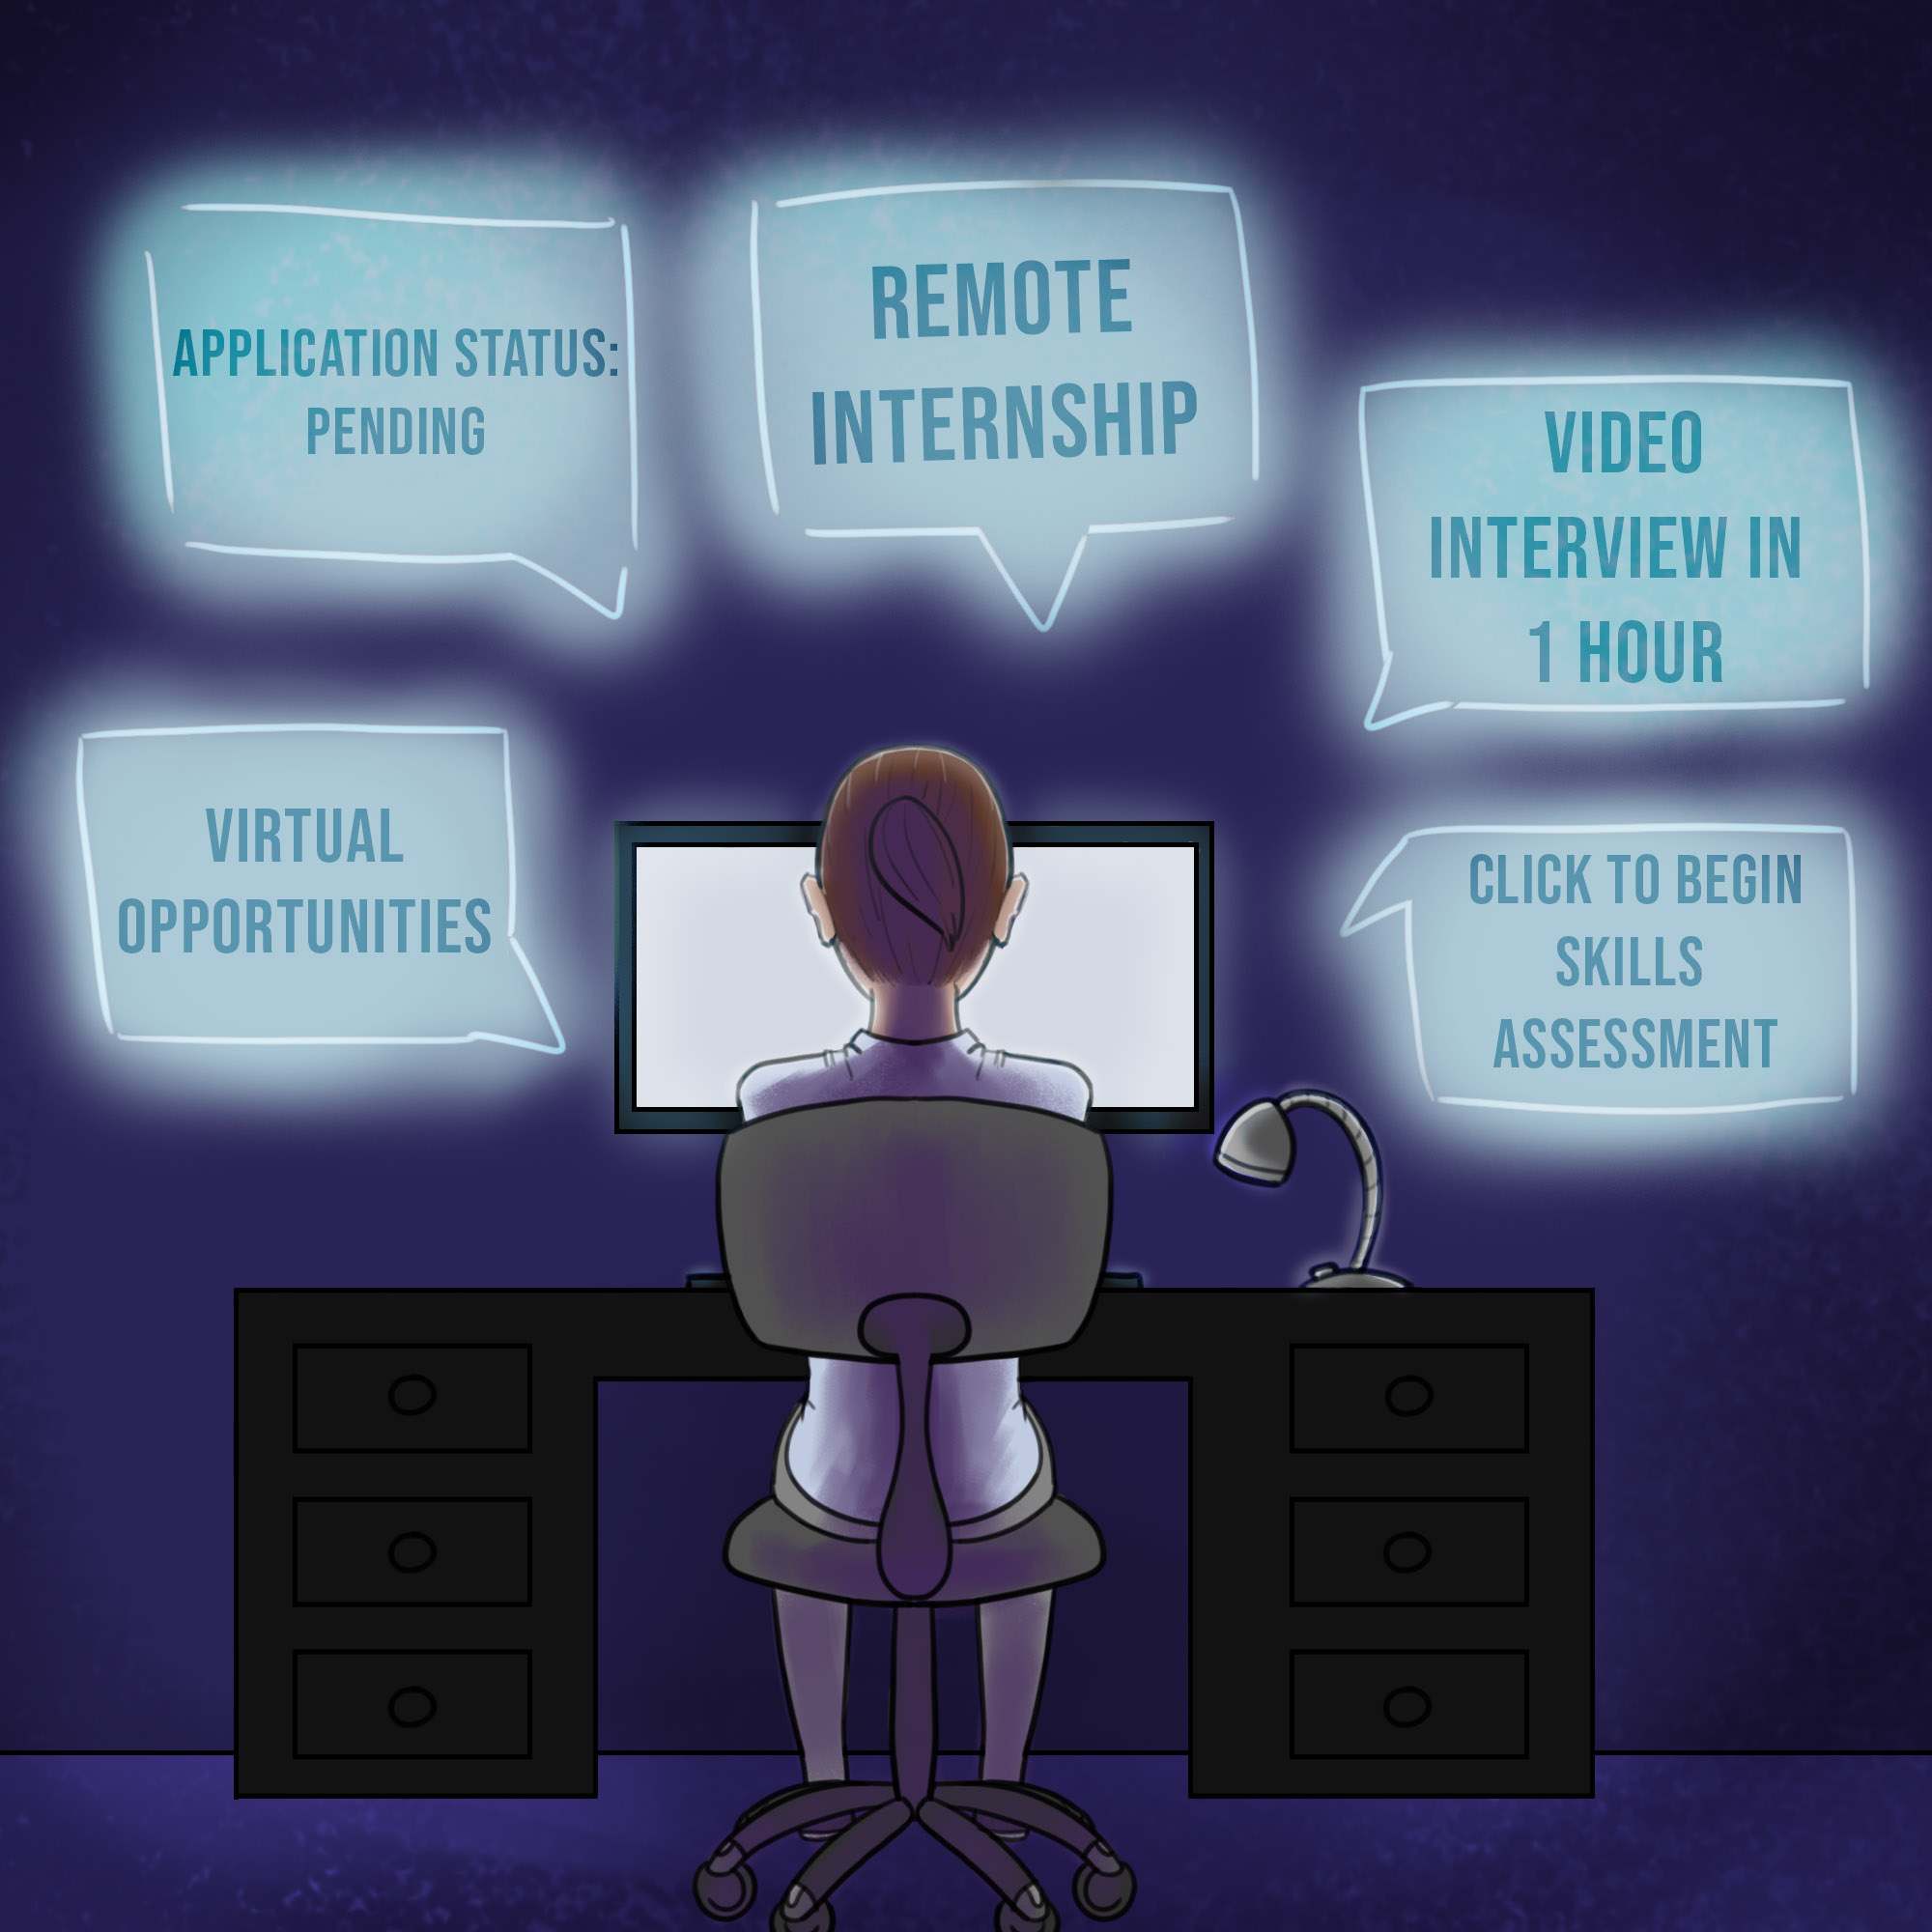 The virtual intern